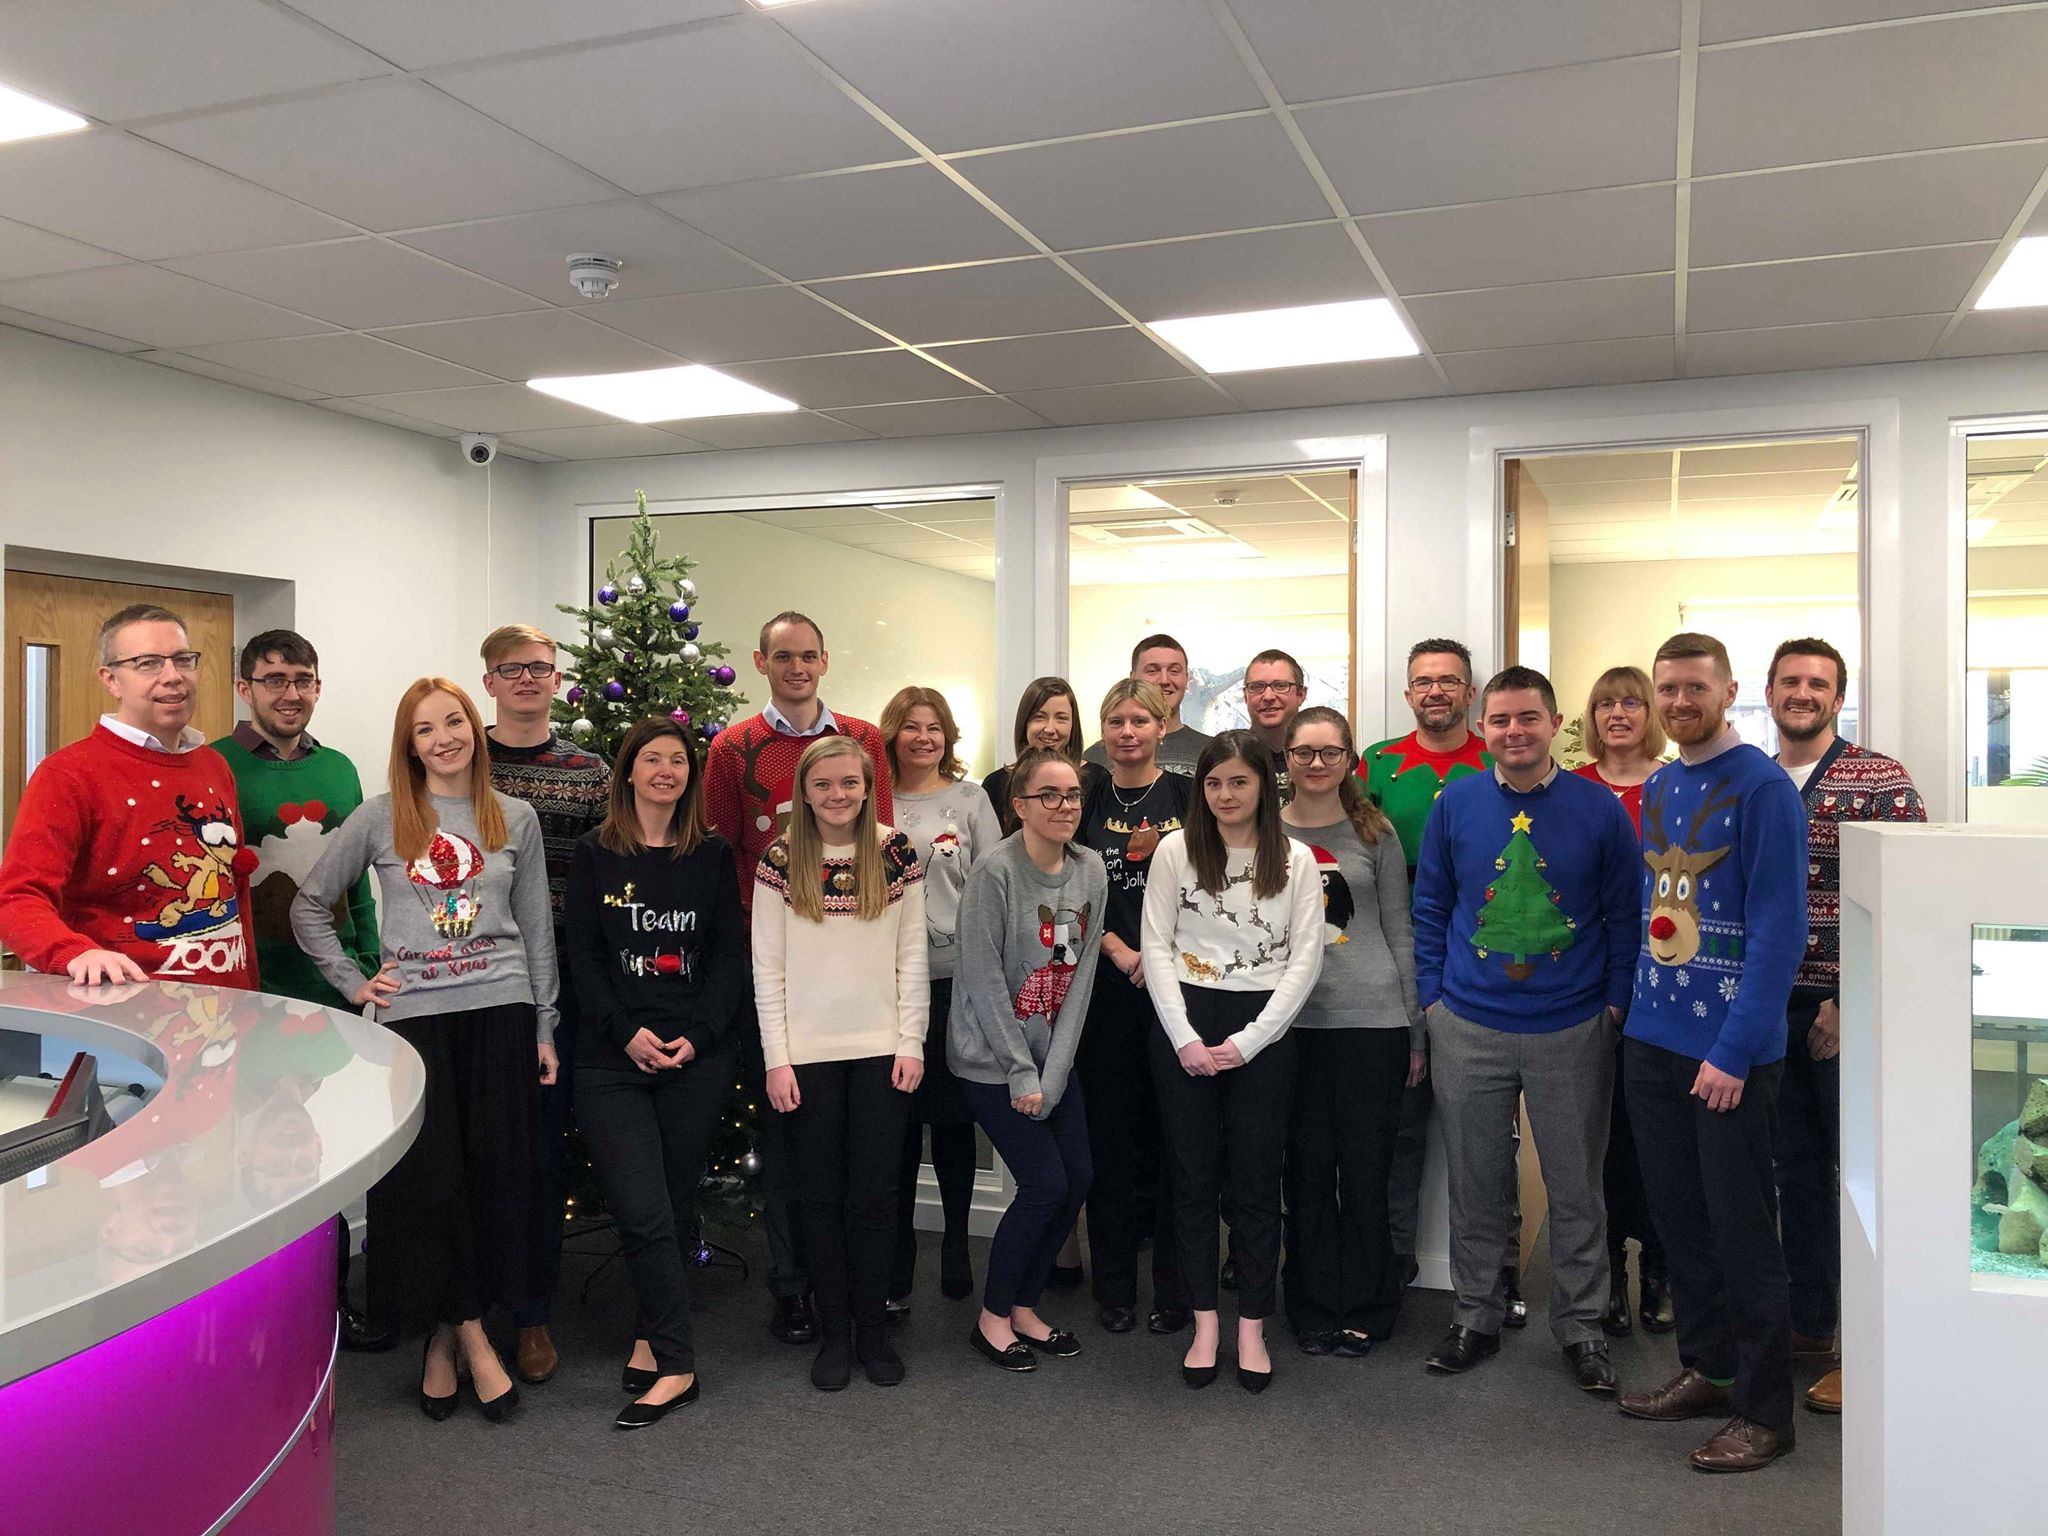 Donning The Knitwear For Christmas Jumper Day